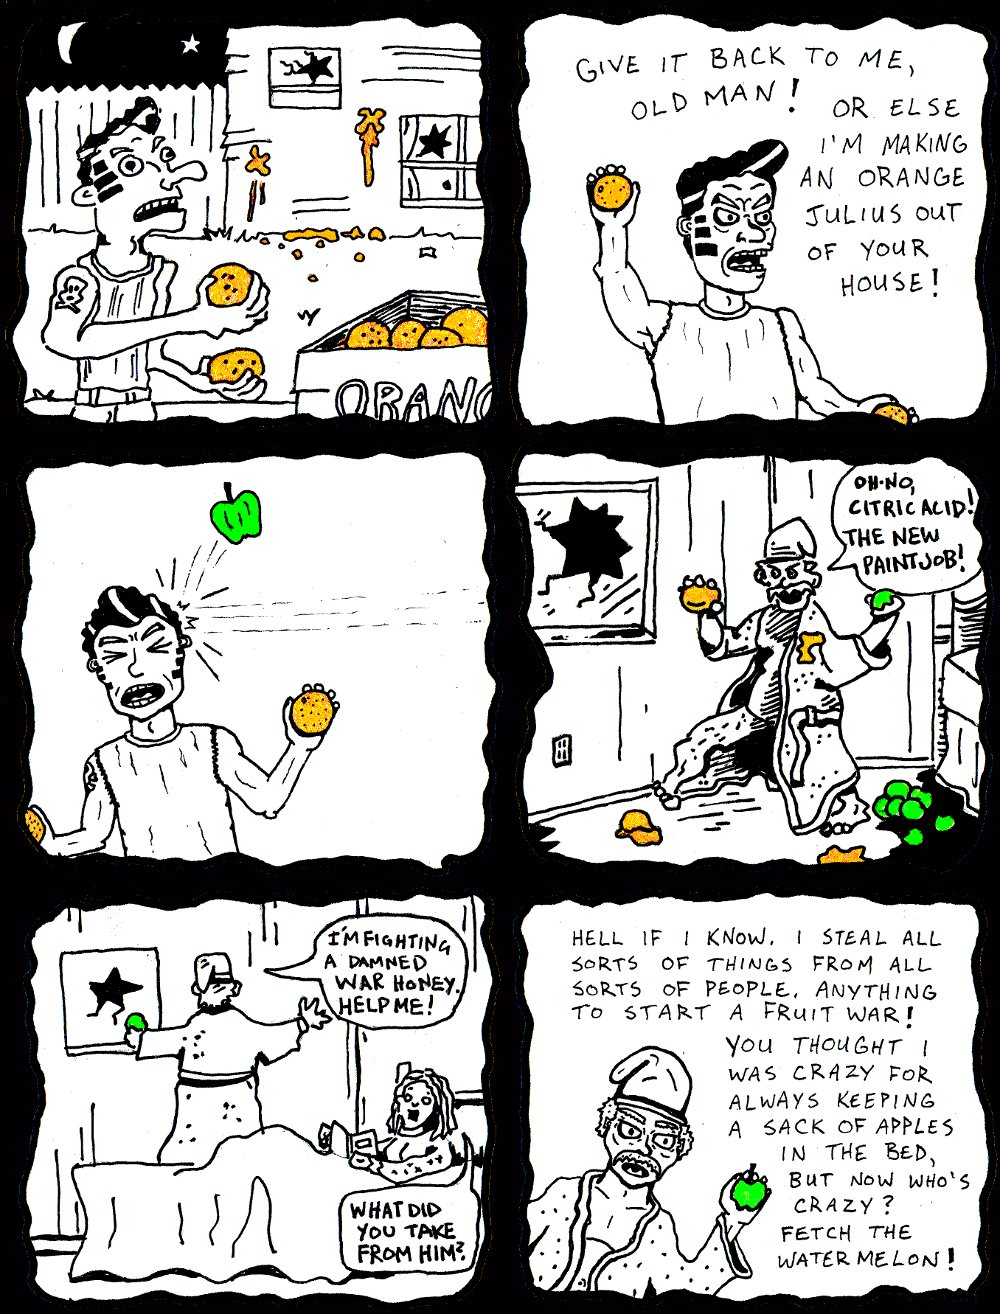 APPLES AND ORANGES (by Marx McNeill and Nate Crone)